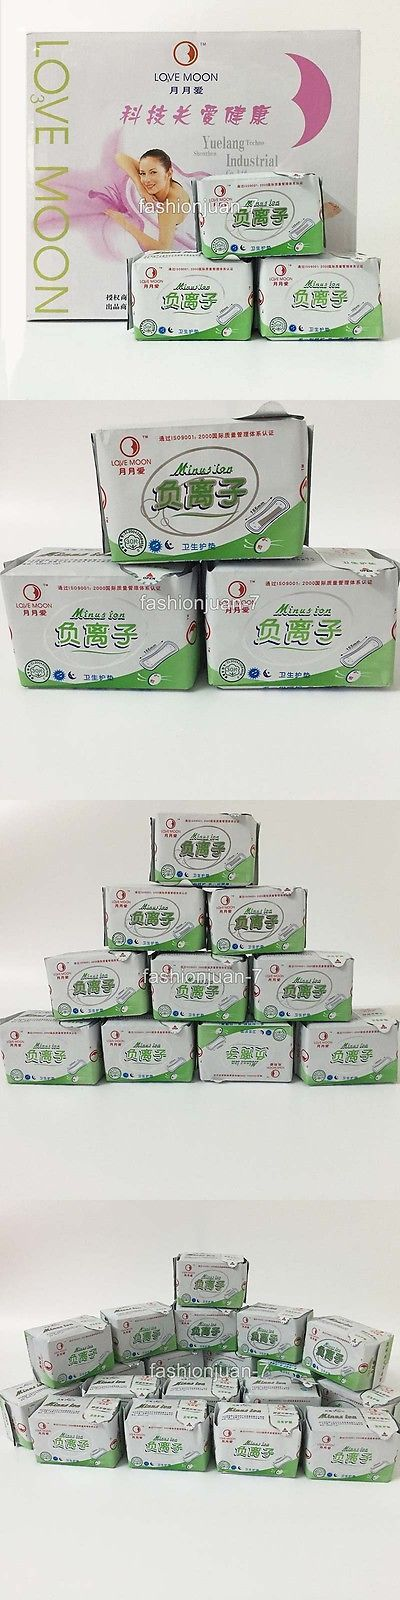 Sanitary Napkins: 19Packages/Lot Winalite Lovemoon/Sanitary Napkin Pads Panty Liners 30Pcs/Pack BUY IT NOW ONLY: $74.85